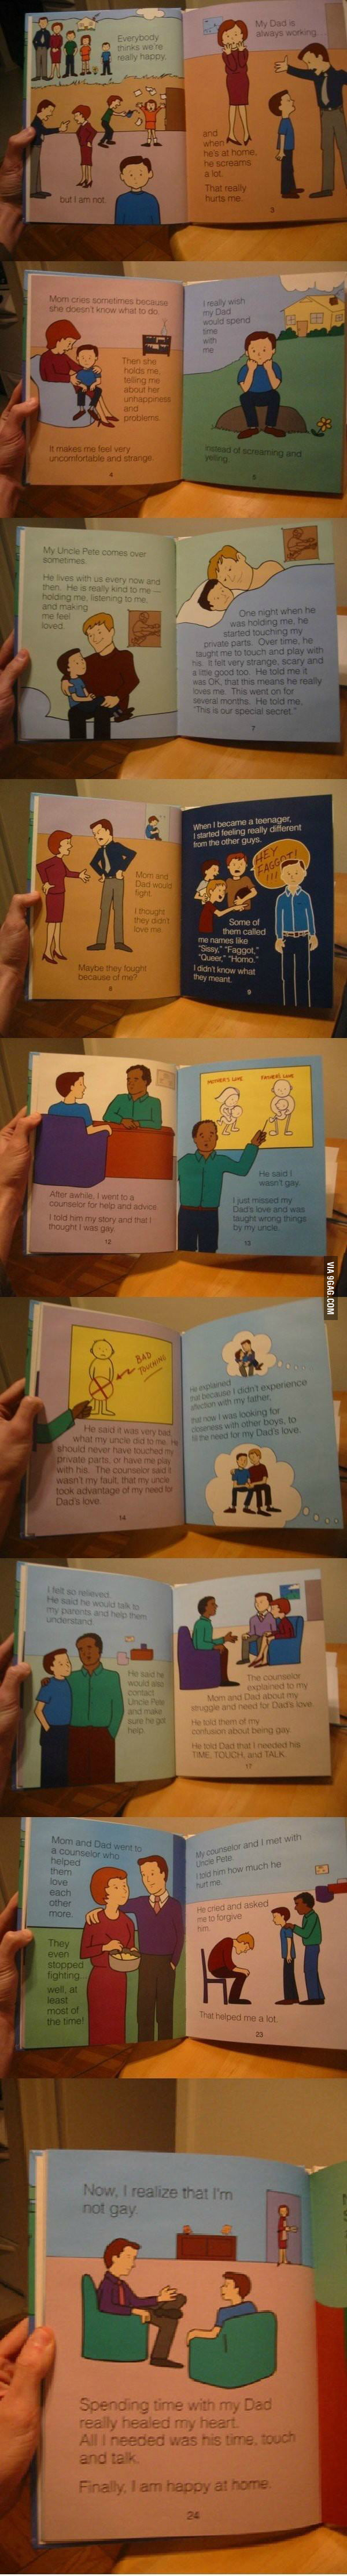 A children's book meant for victims of child abuse...